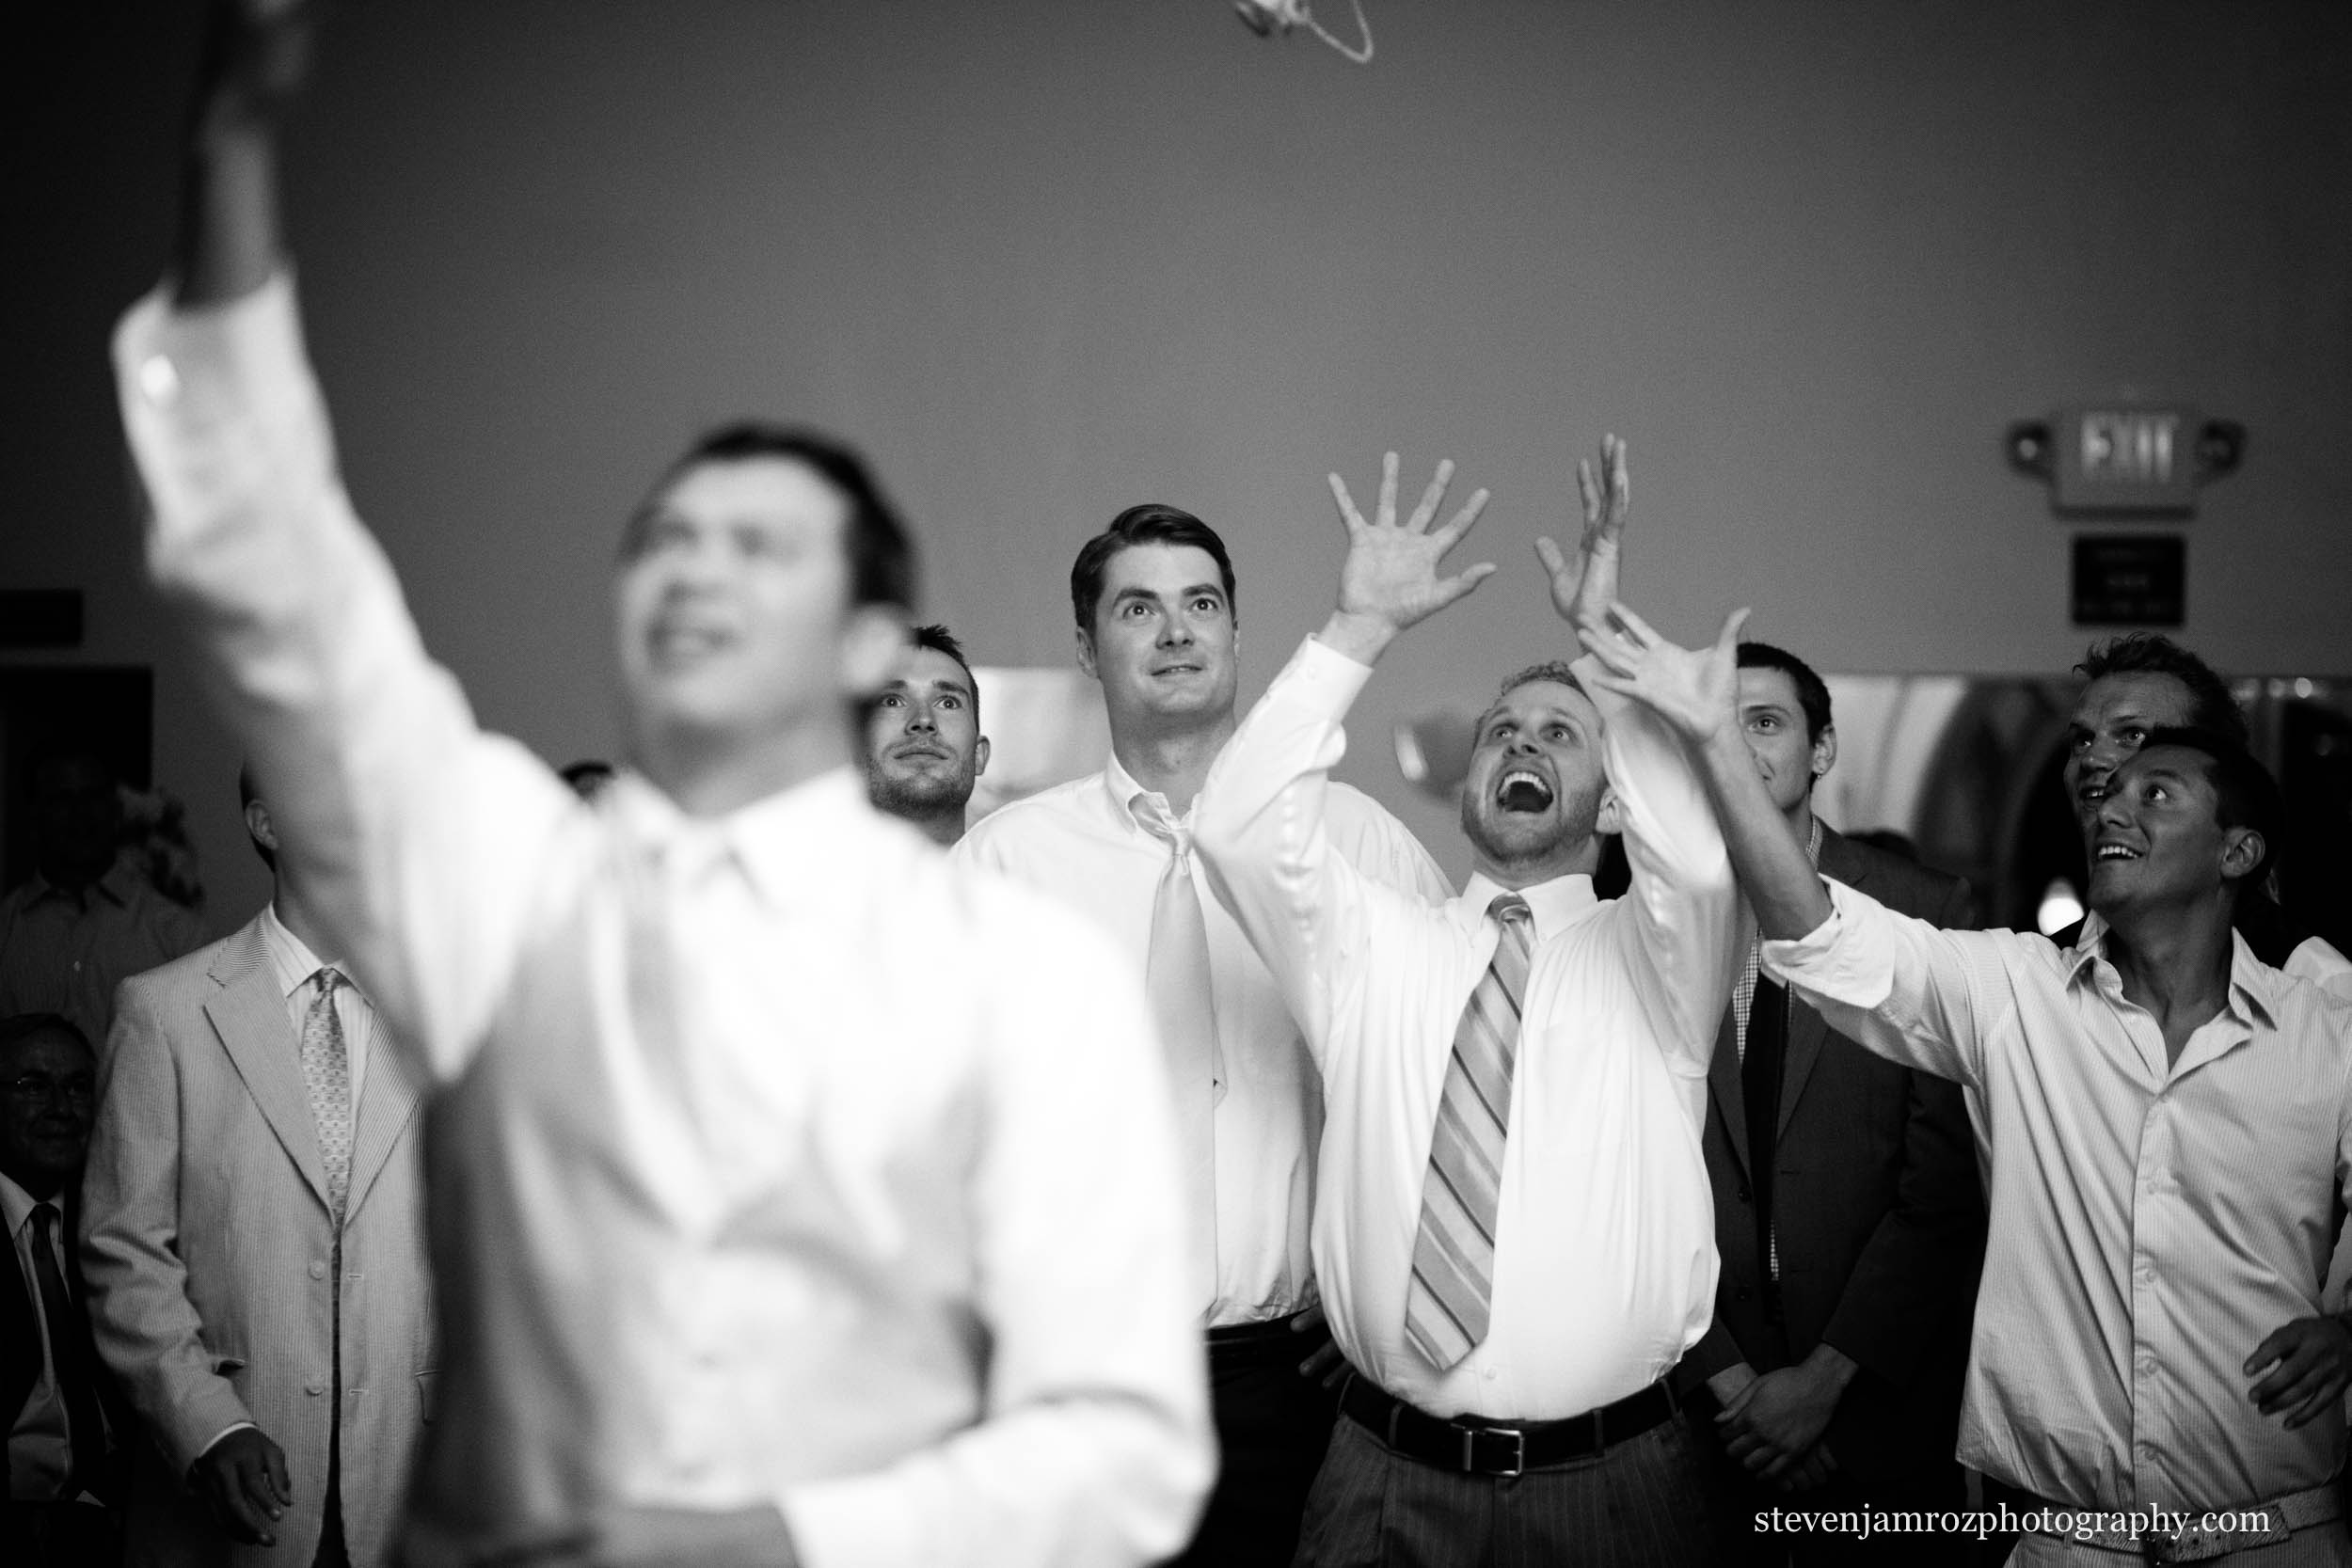 garter-toss-catch-raleigh-wedding-steven-jamroz-photography-0597.jpg